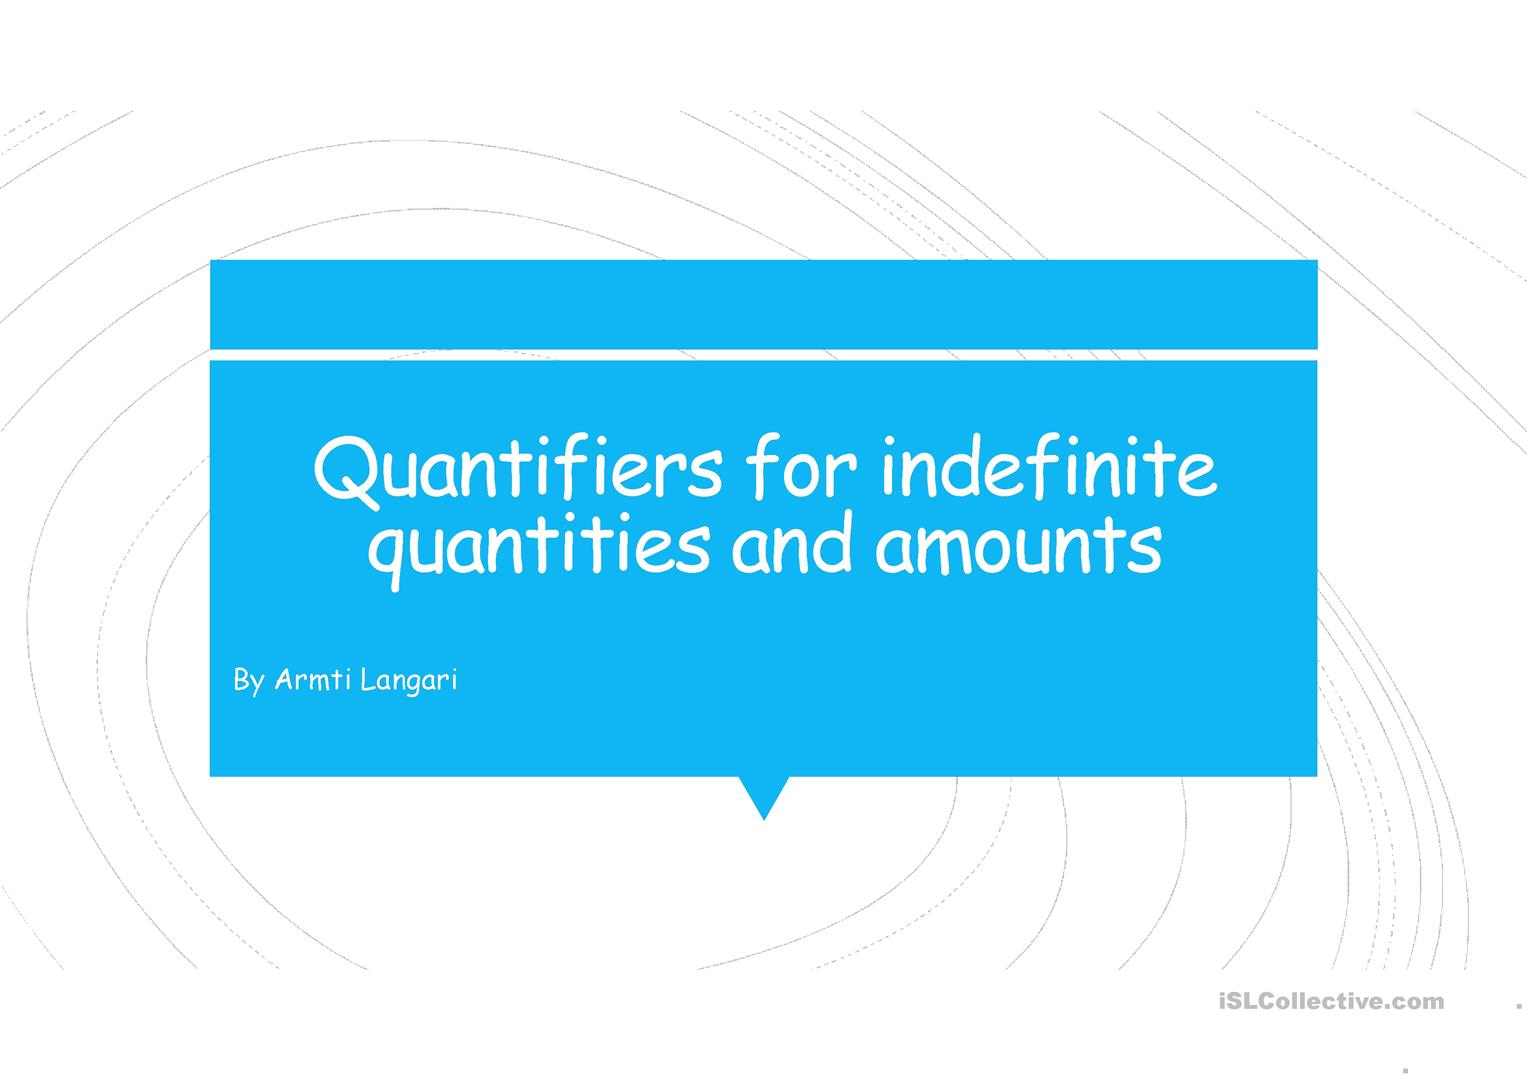 Quantifiers For Indefinite Quantities And Amounts